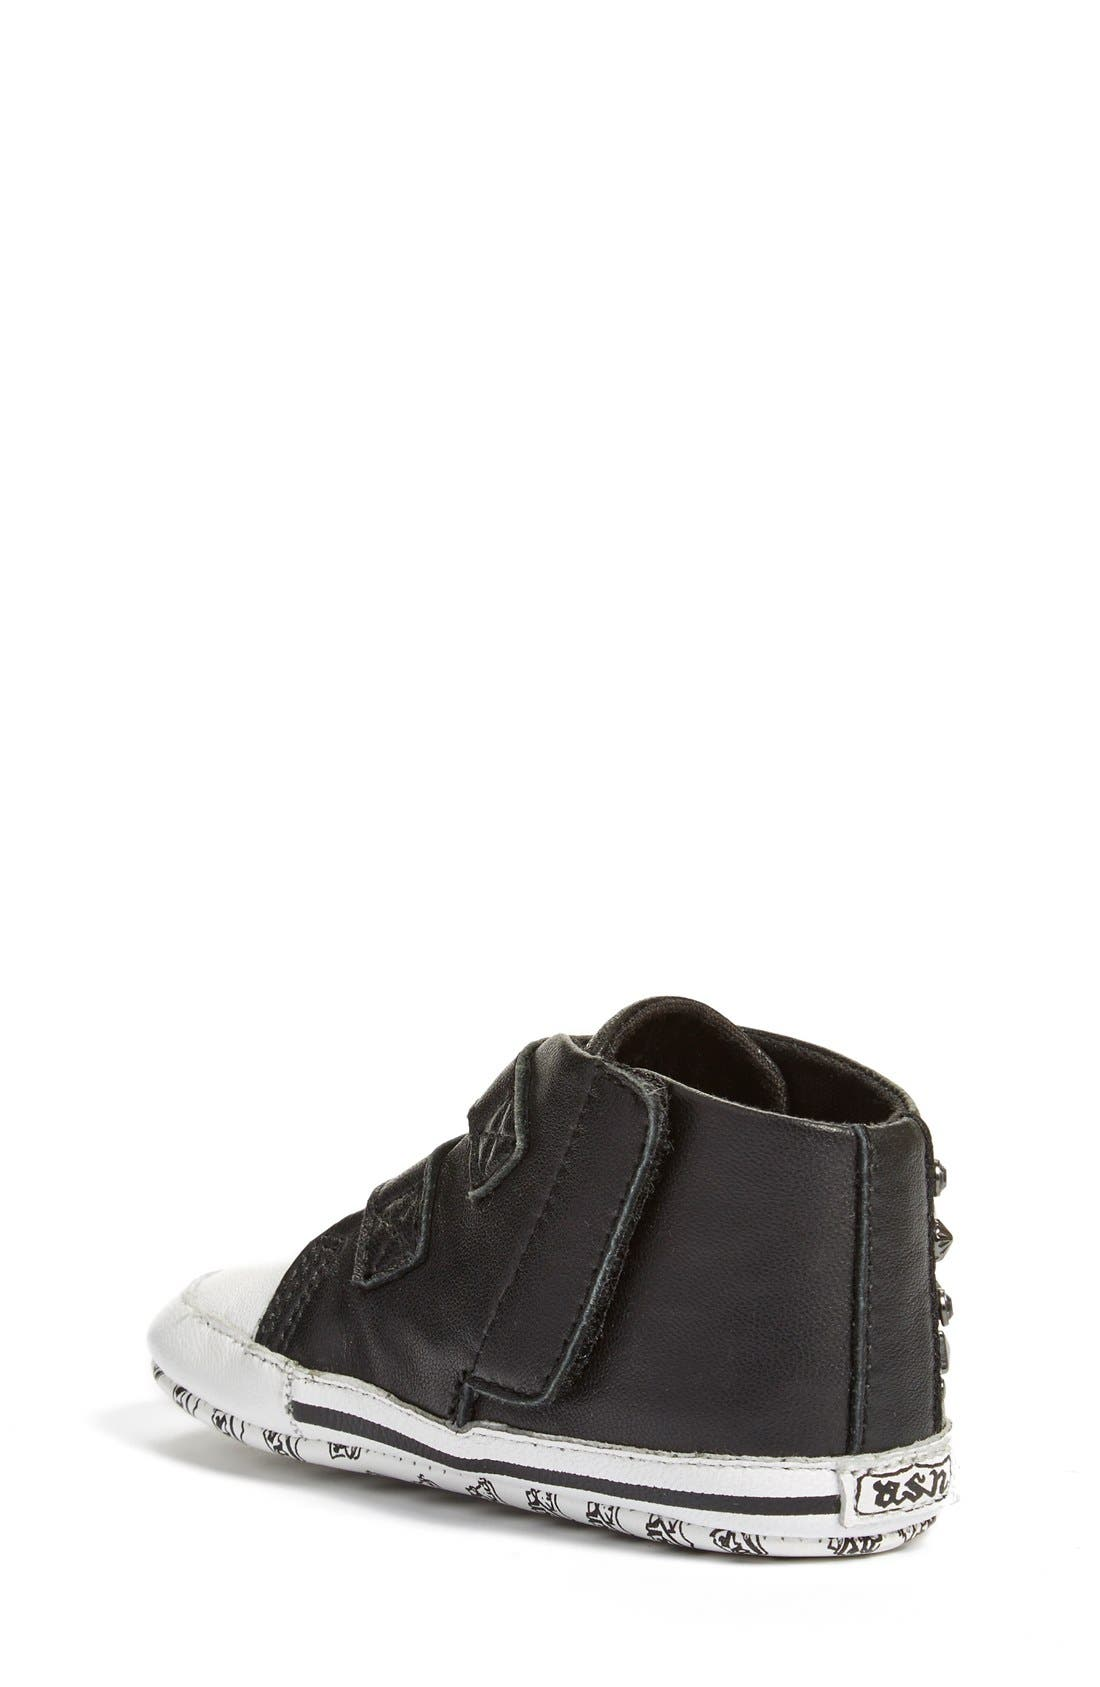 'Viper' High Top Crib Shoe,                             Alternate thumbnail 2, color,                             Black Leather